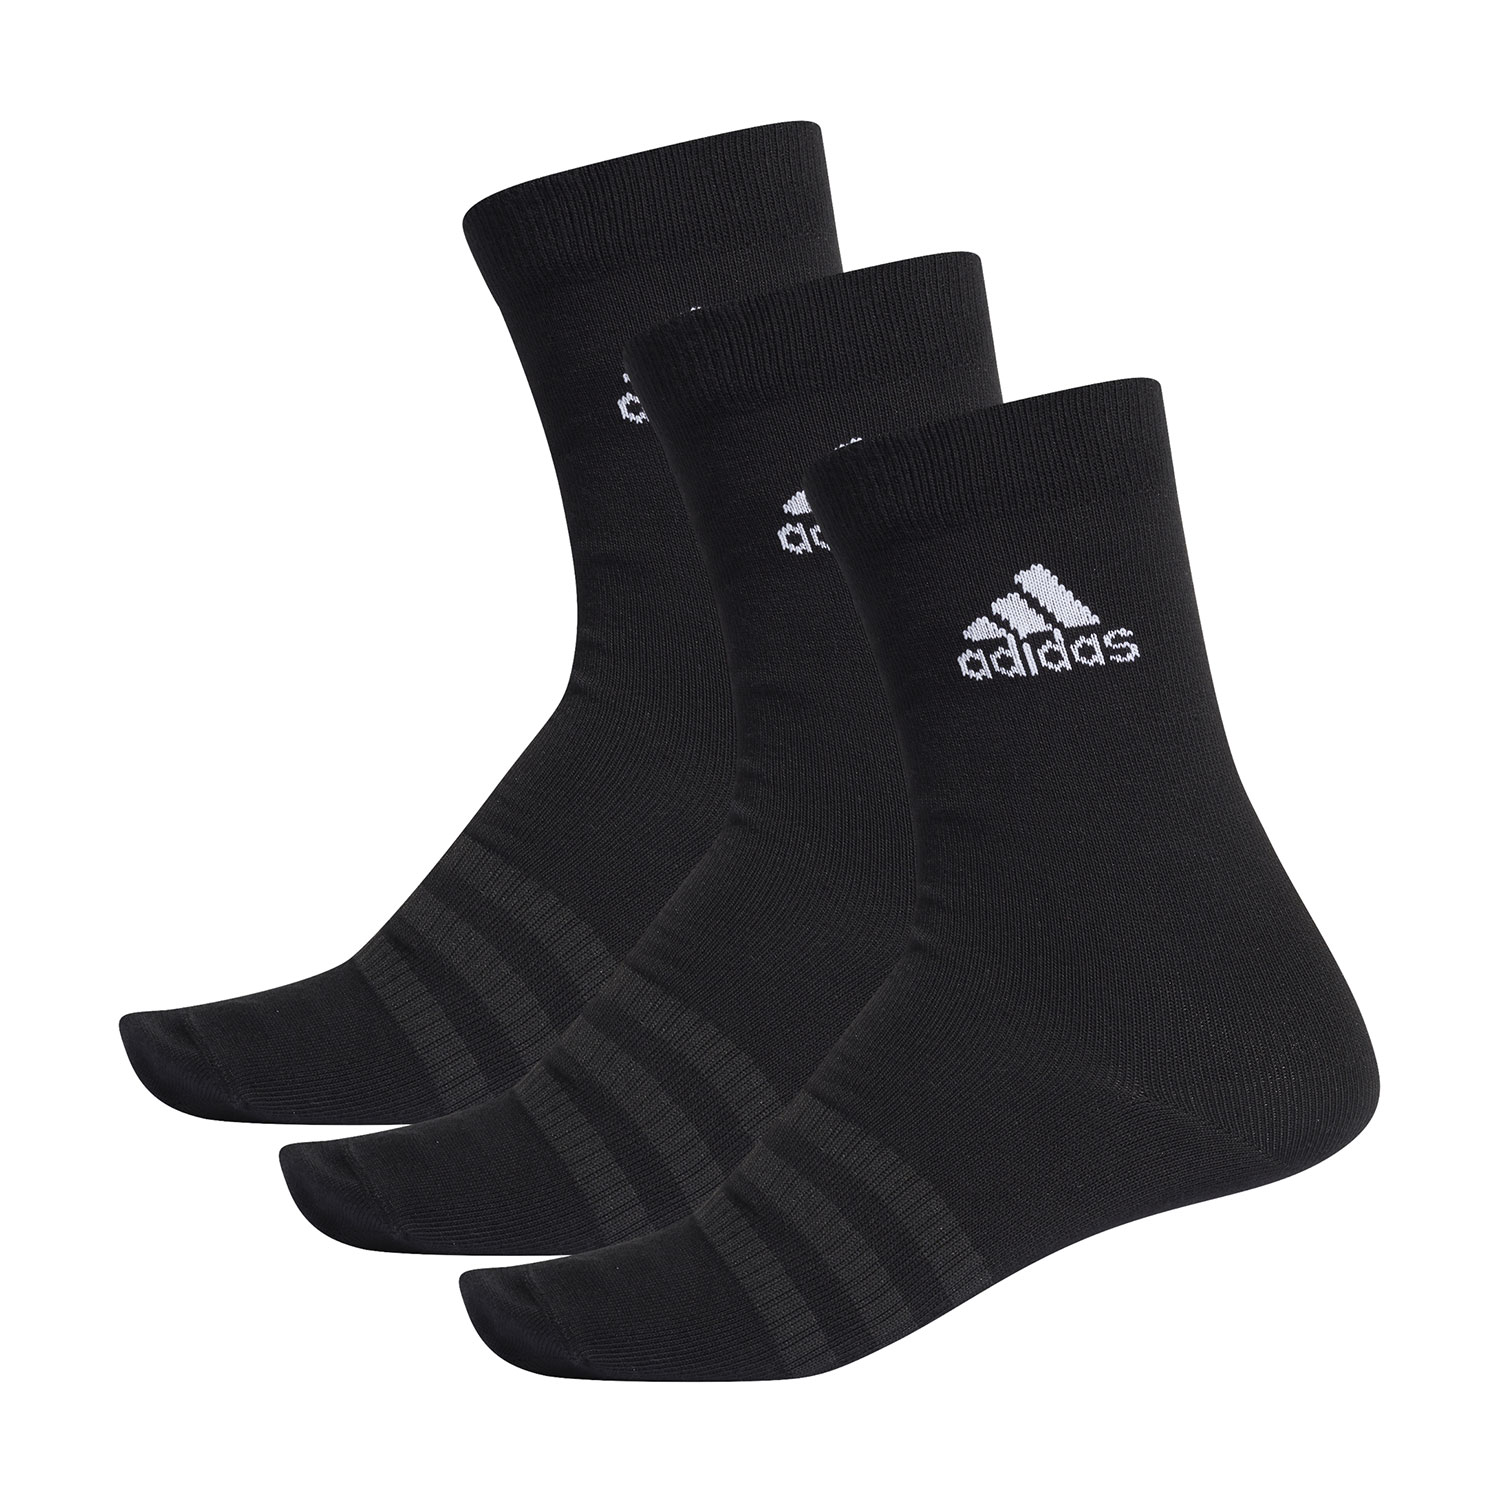 Adidas Lightweight Crew x 3 Socks - Black